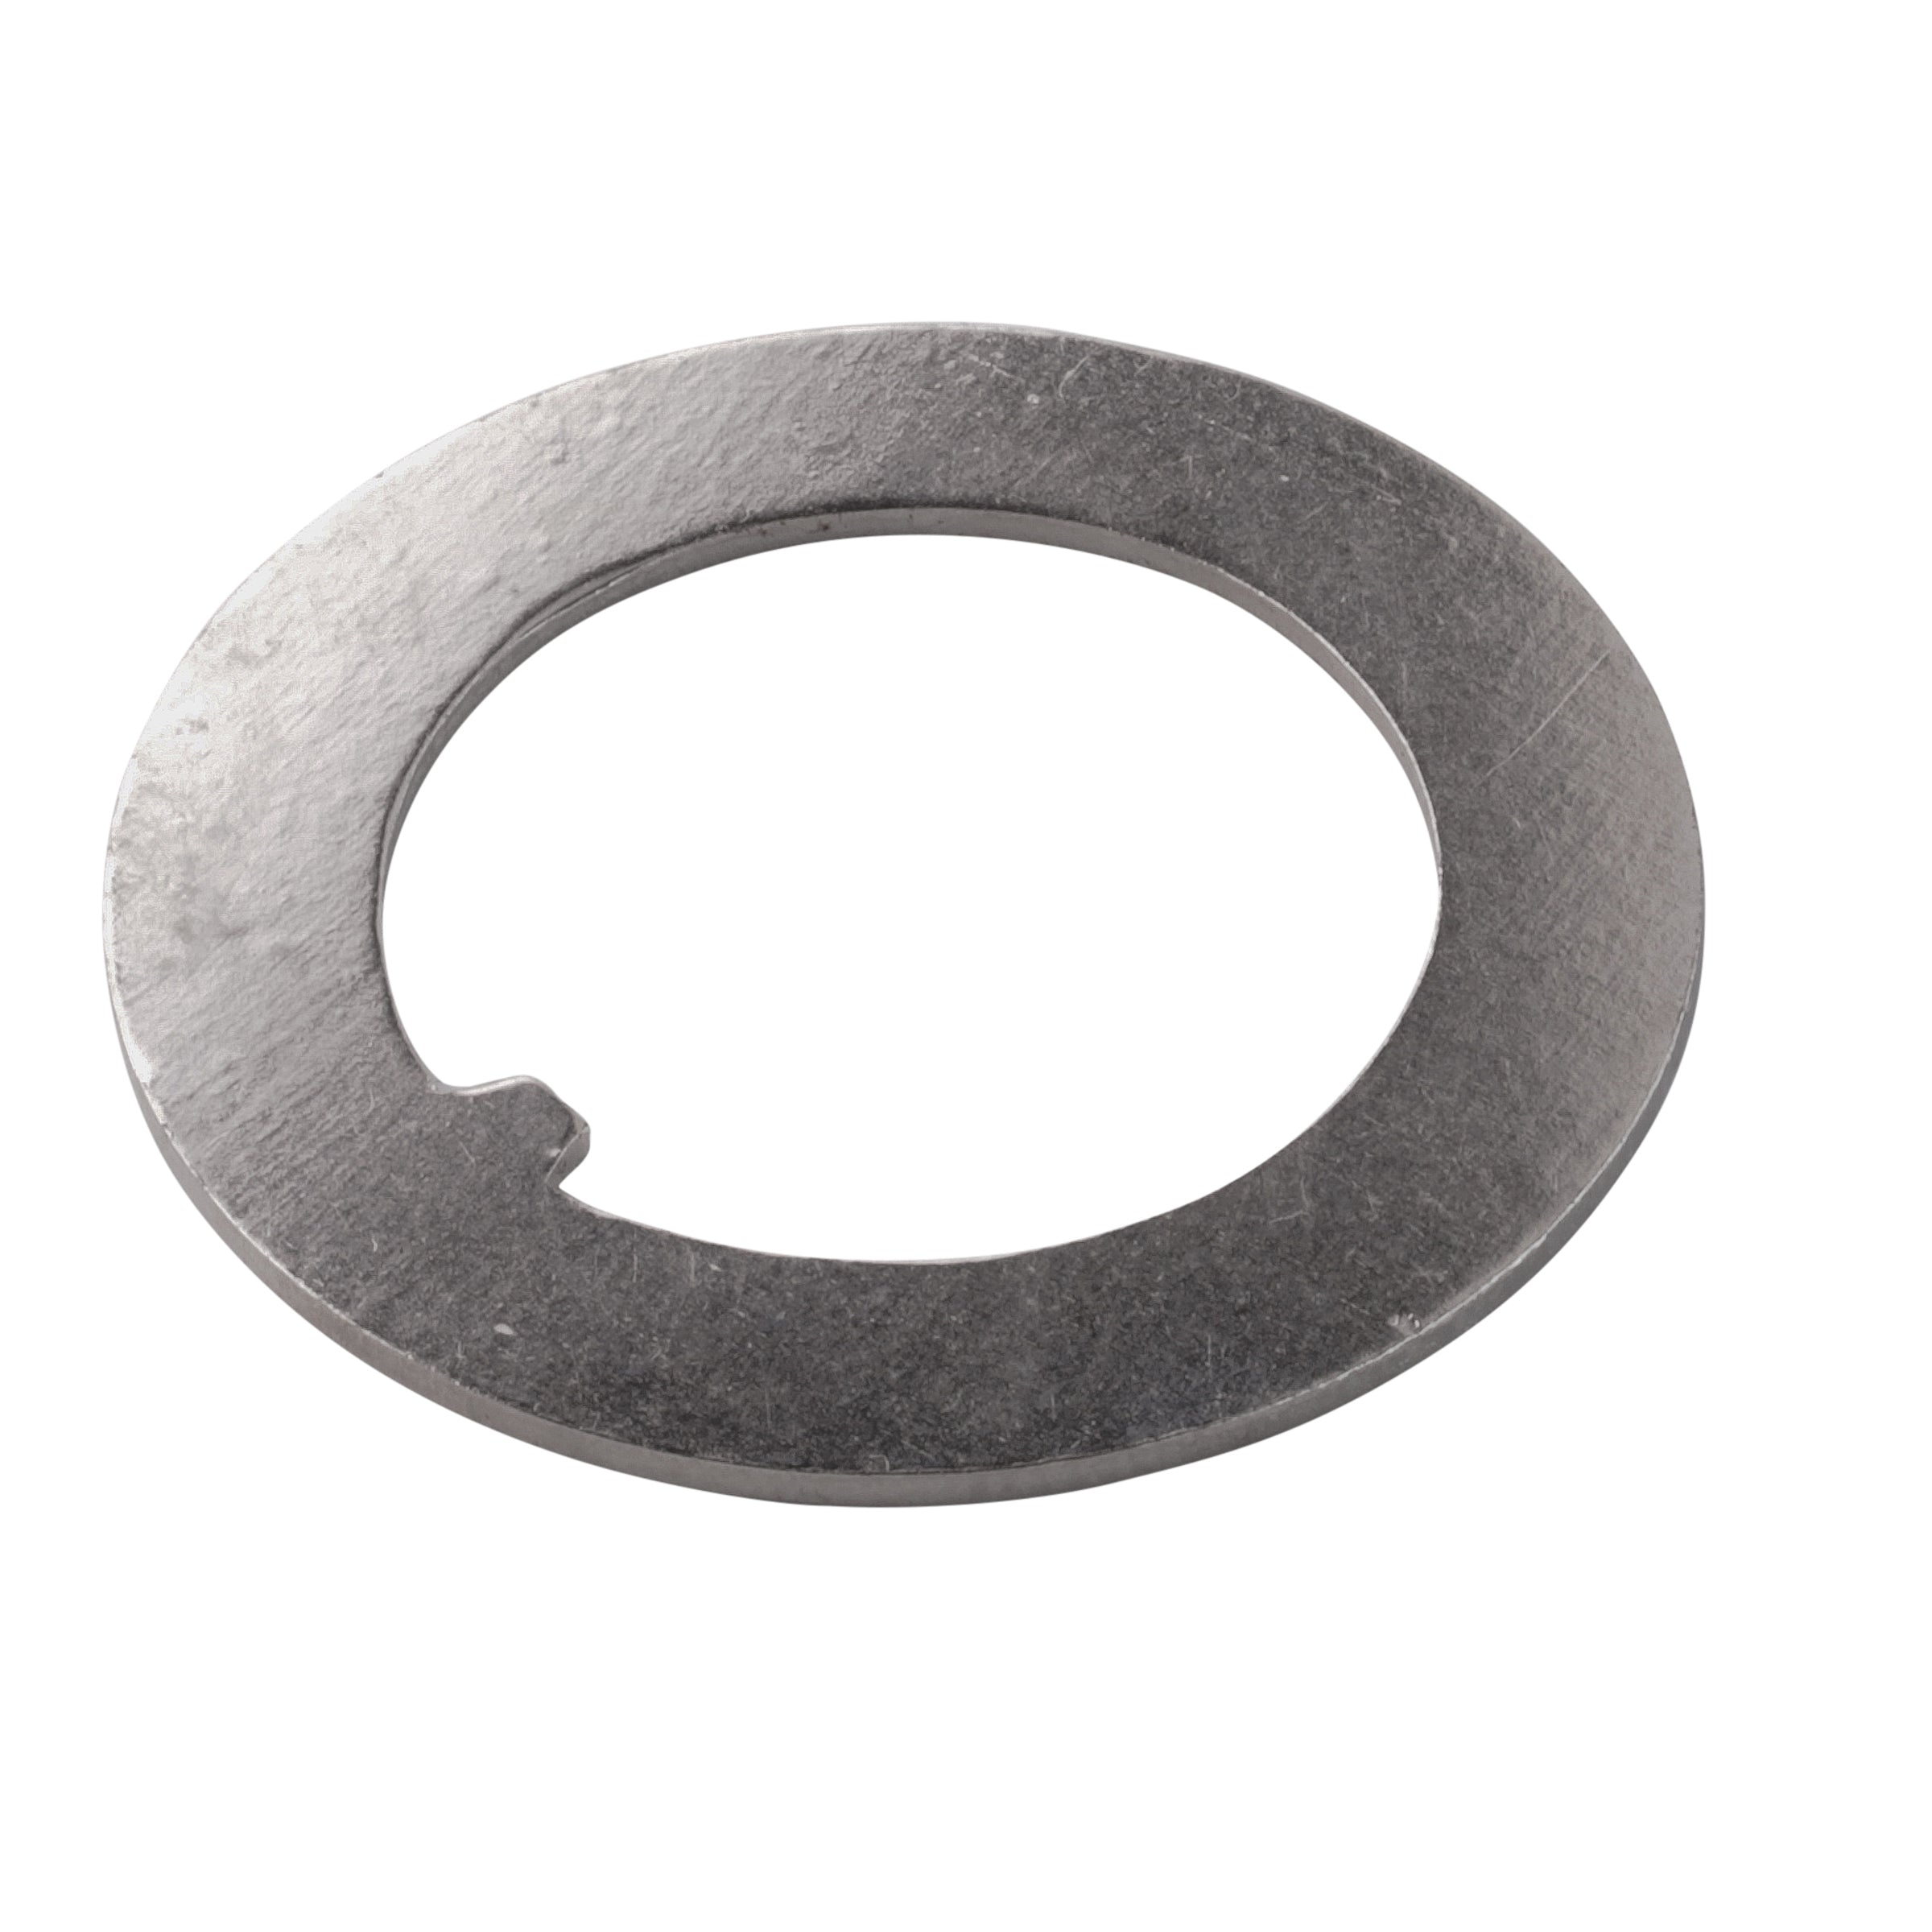 Pinion Thrust Washer • 1932-48 Ford Passenger & Pickup